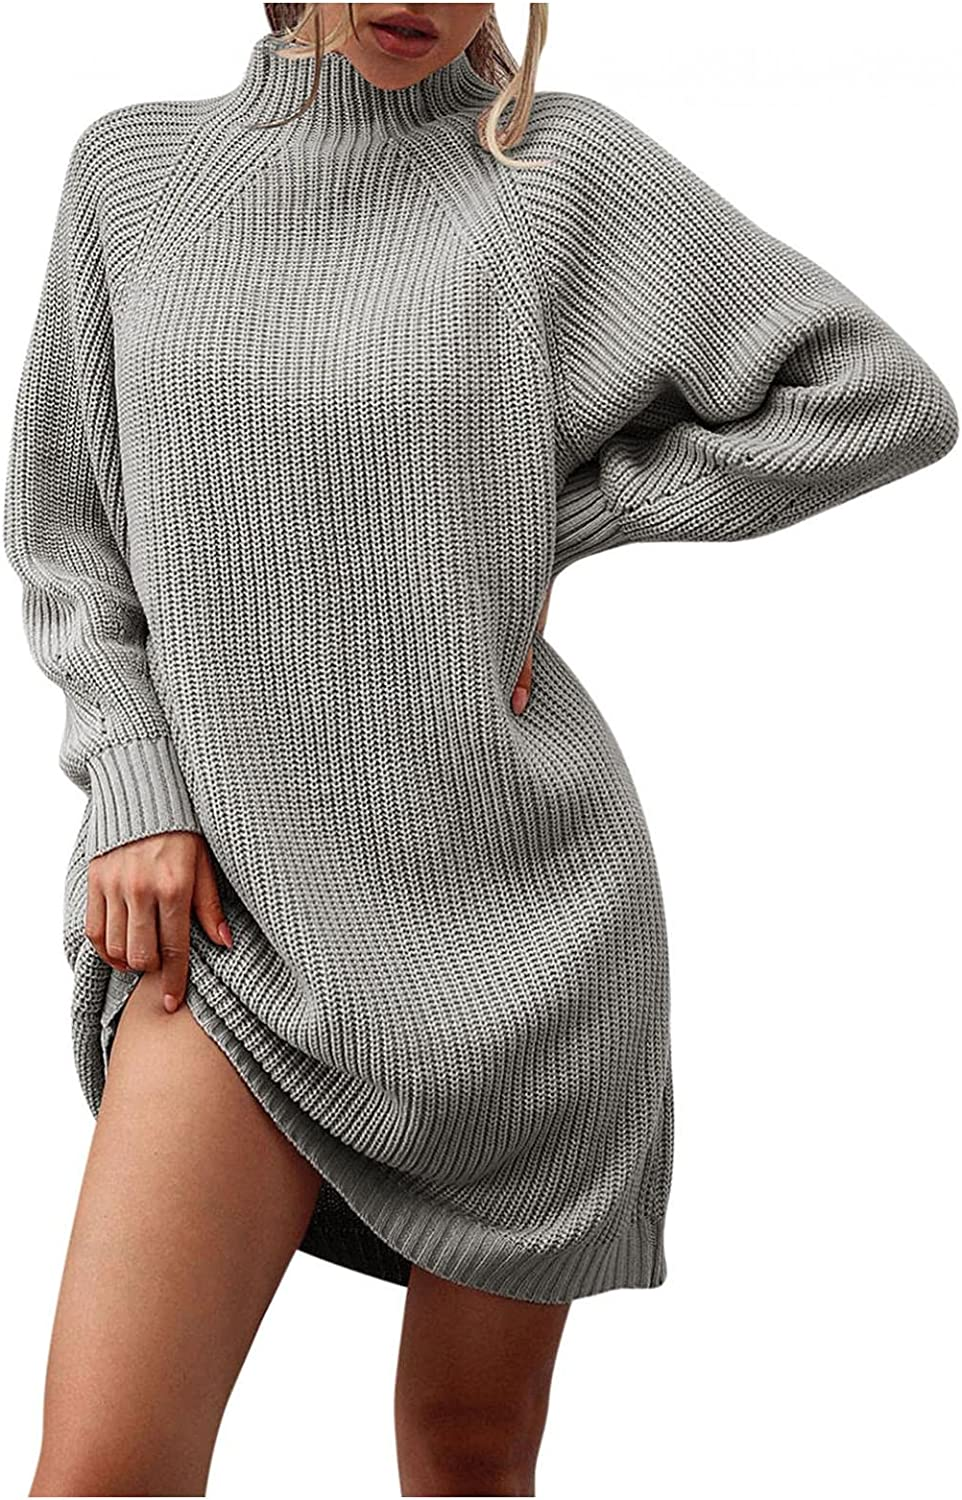 DIOMOR Women Pullover Sweater Dress Free shipping New Fashion Autumn Solid Challenge the lowest price Loose L